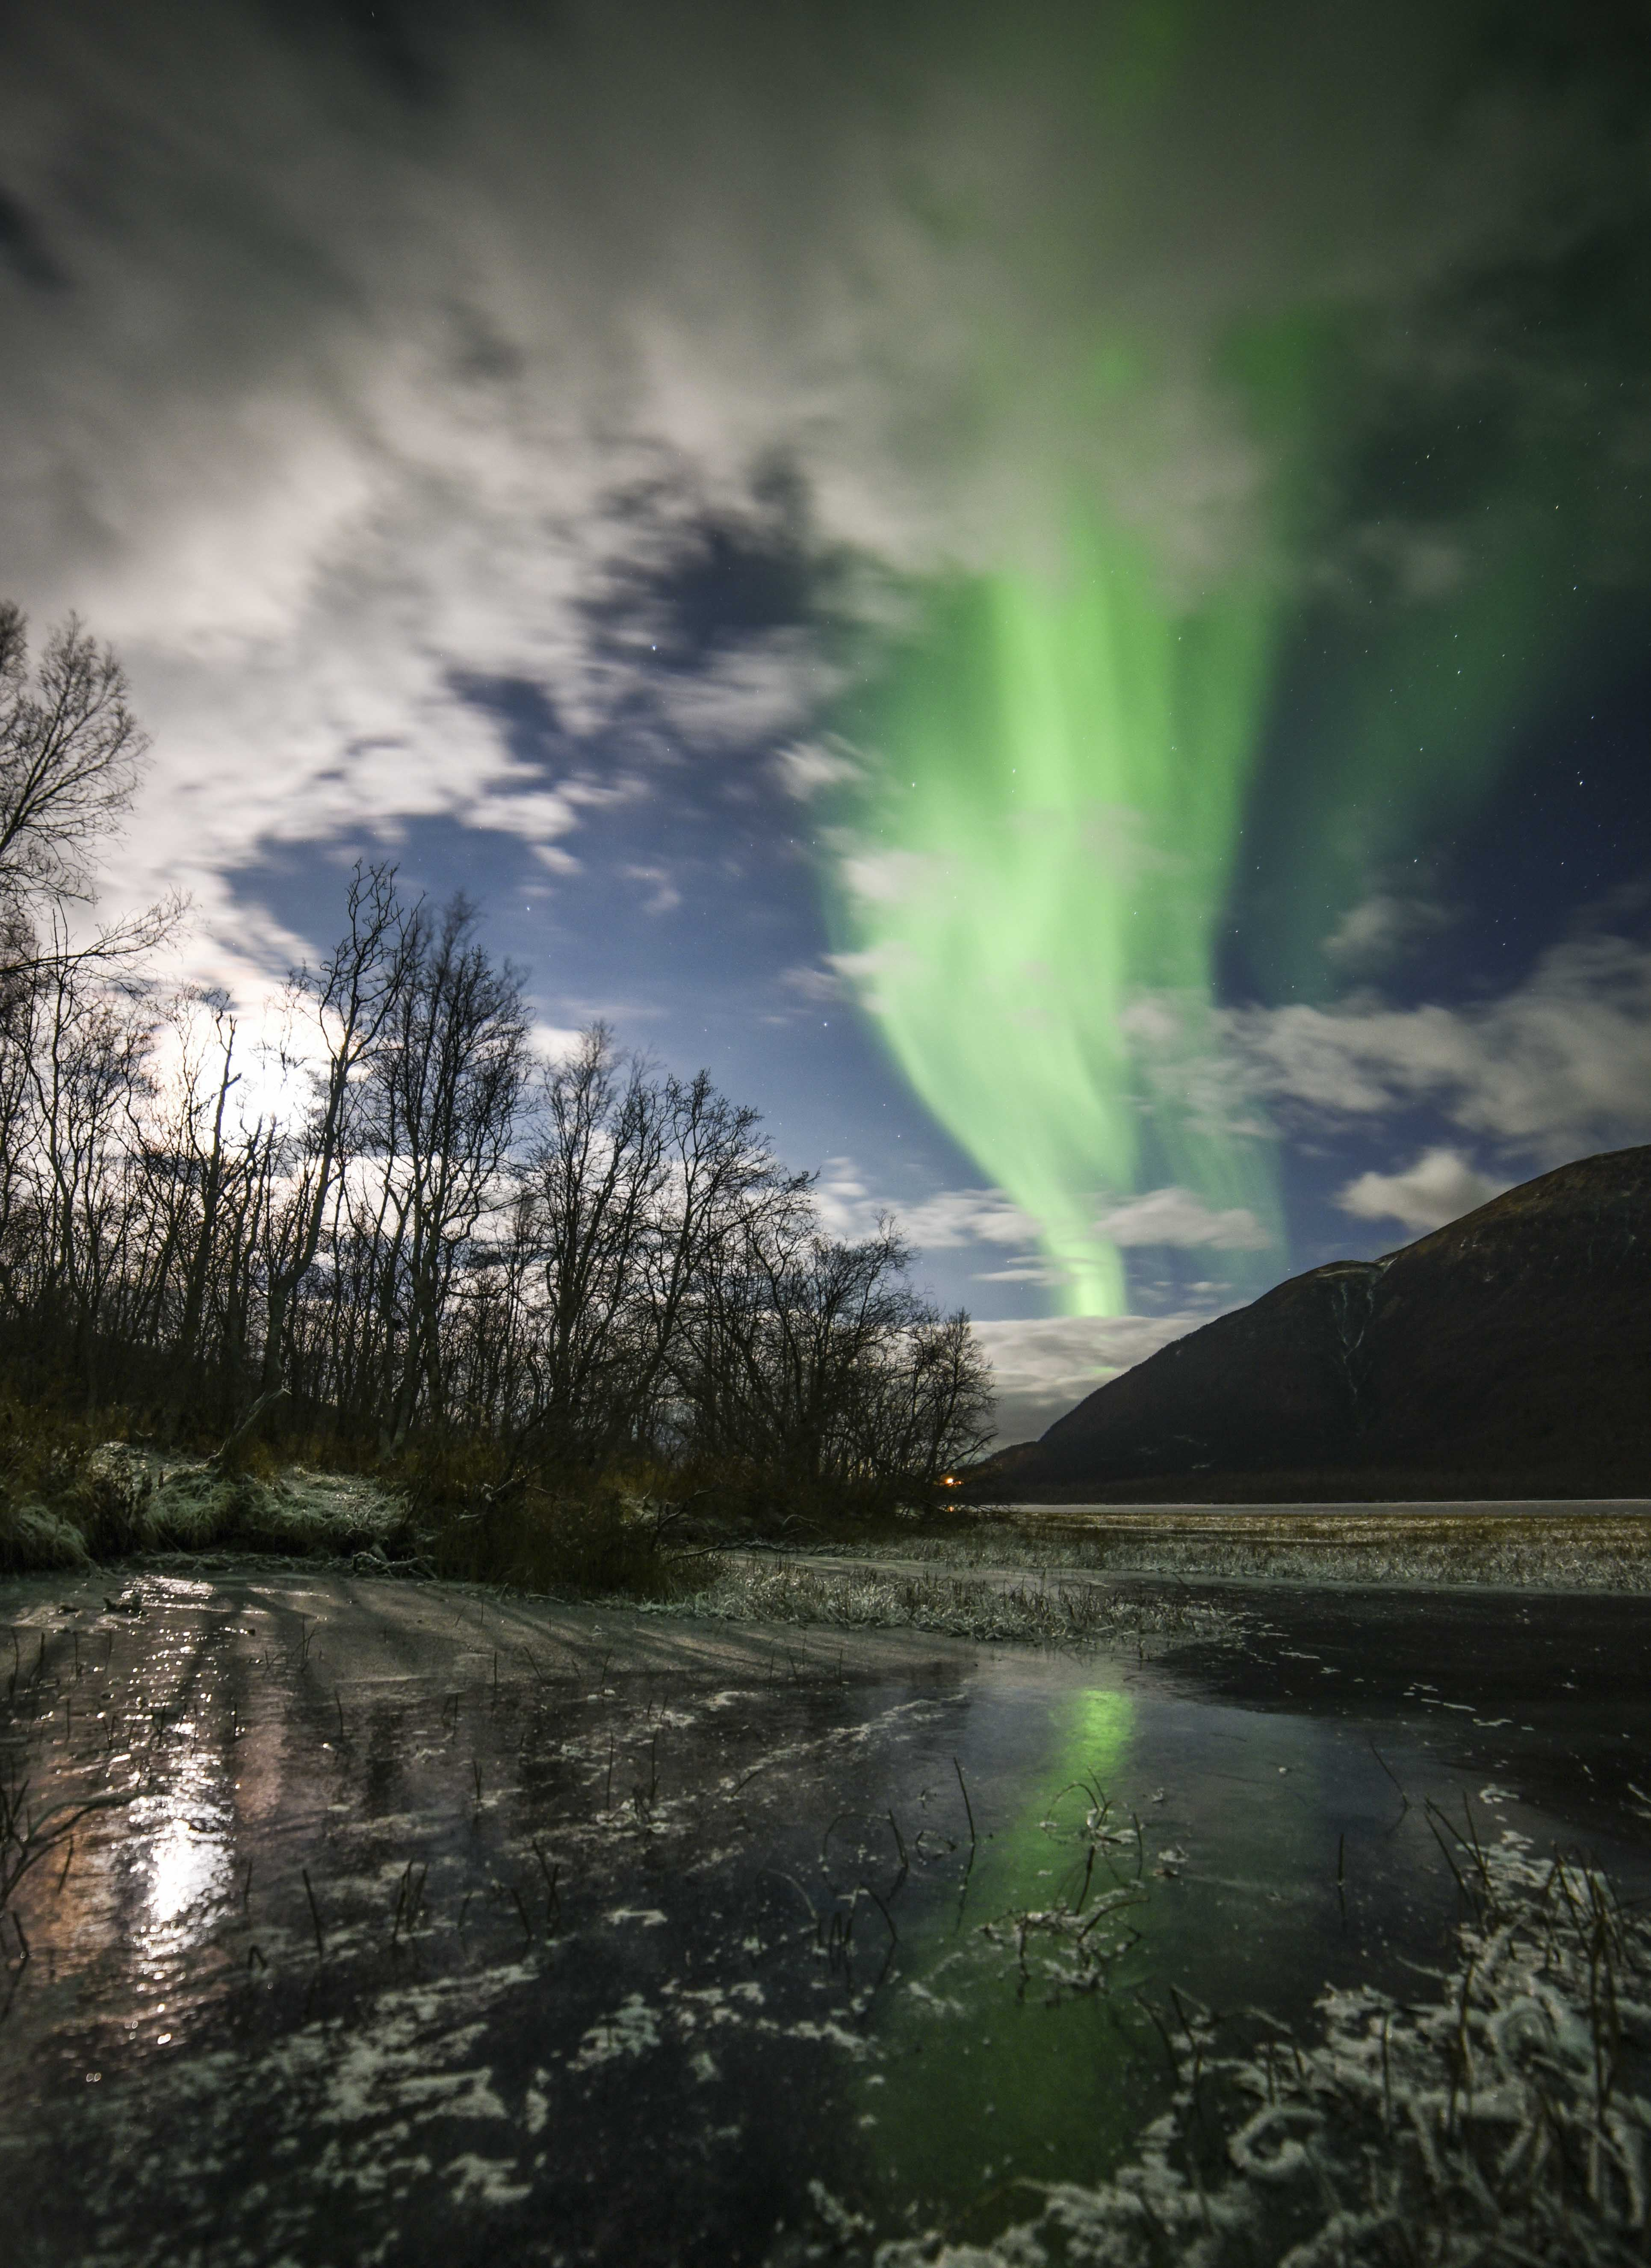 Aurora in Wonderland - a northern lights chase by minibuss - The Green Adventure